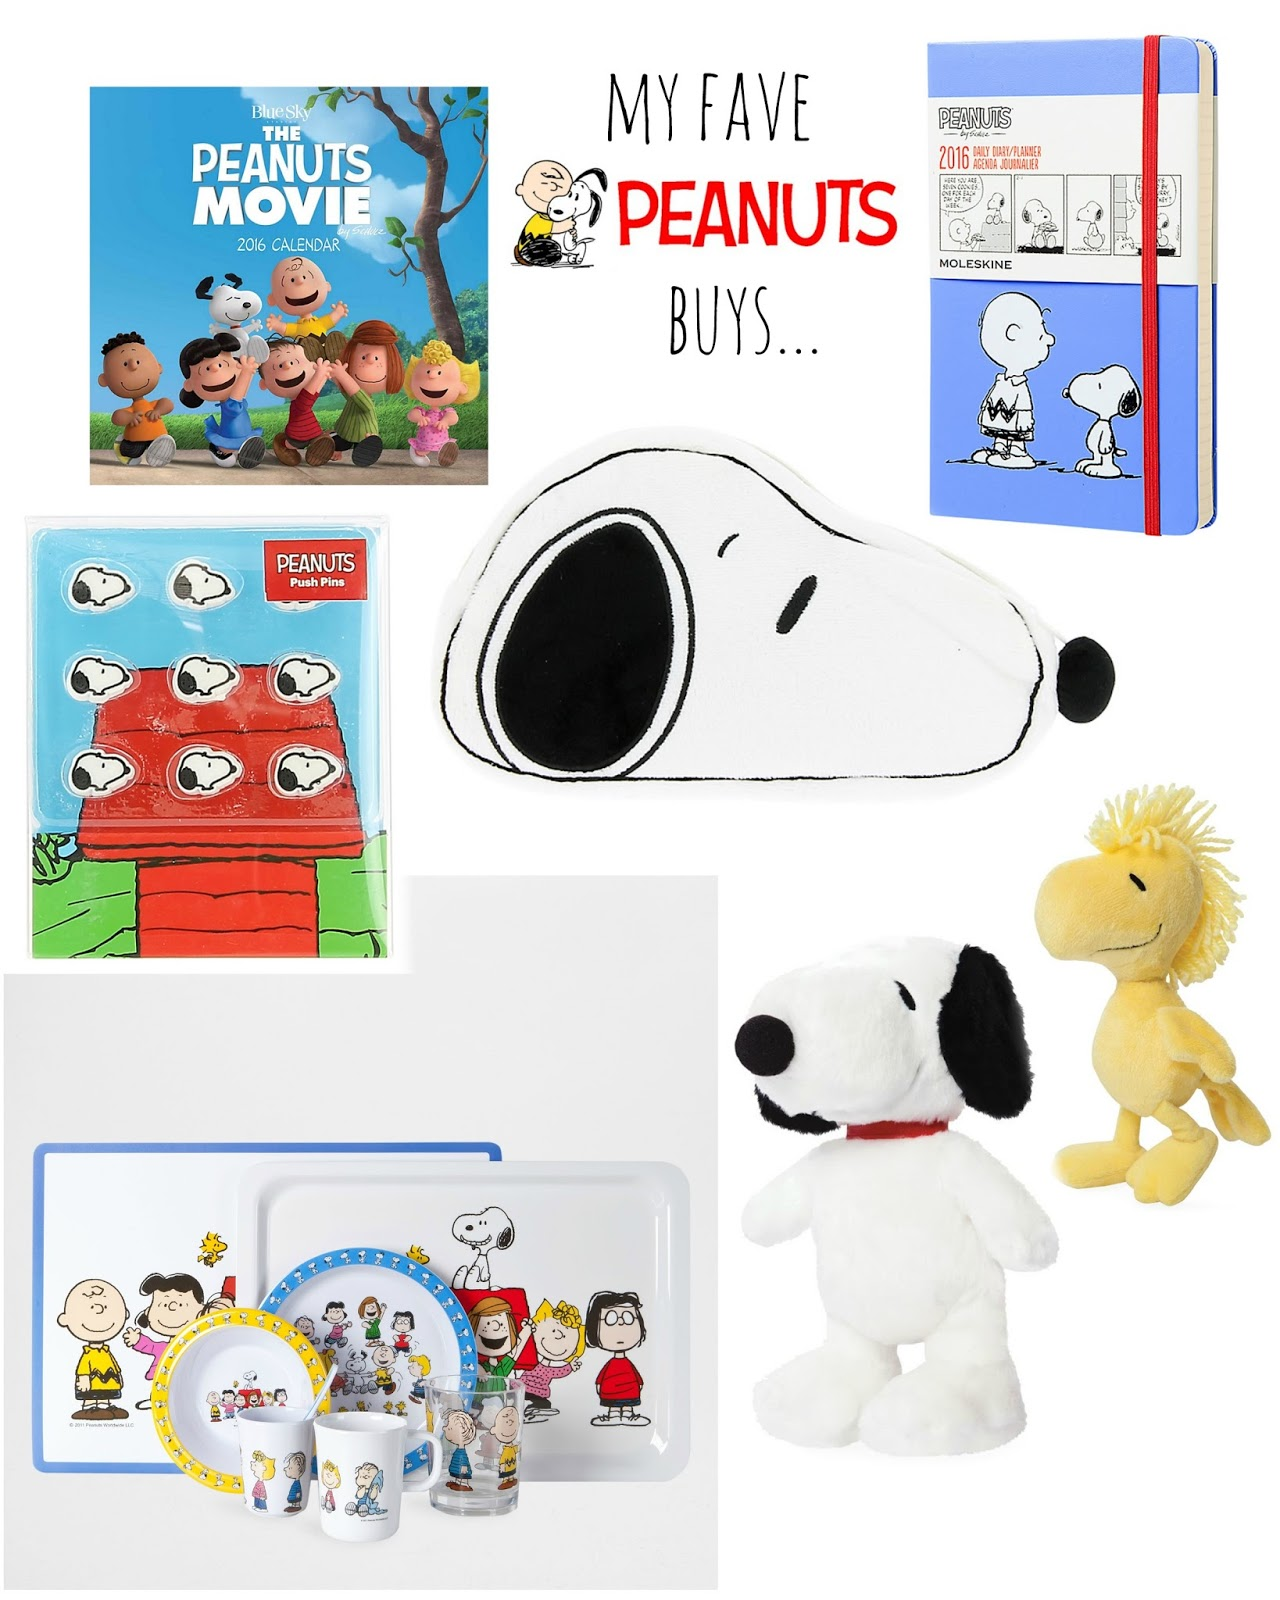 mamasVIB | V. I. BUYS: Welcome to #mamamondays… Peanuts movie, Elf on the Shelf & Gurgle Magazine,V. I. BUYS, mamamondays, Gurgle magazine, new work, Peanuts, Charlie Brown, Snoopy, The Cambridge Satchel Company, Elf on the shelf, christmas traditions, mama monday, gap peanuts collection, shopping, christmas gifts